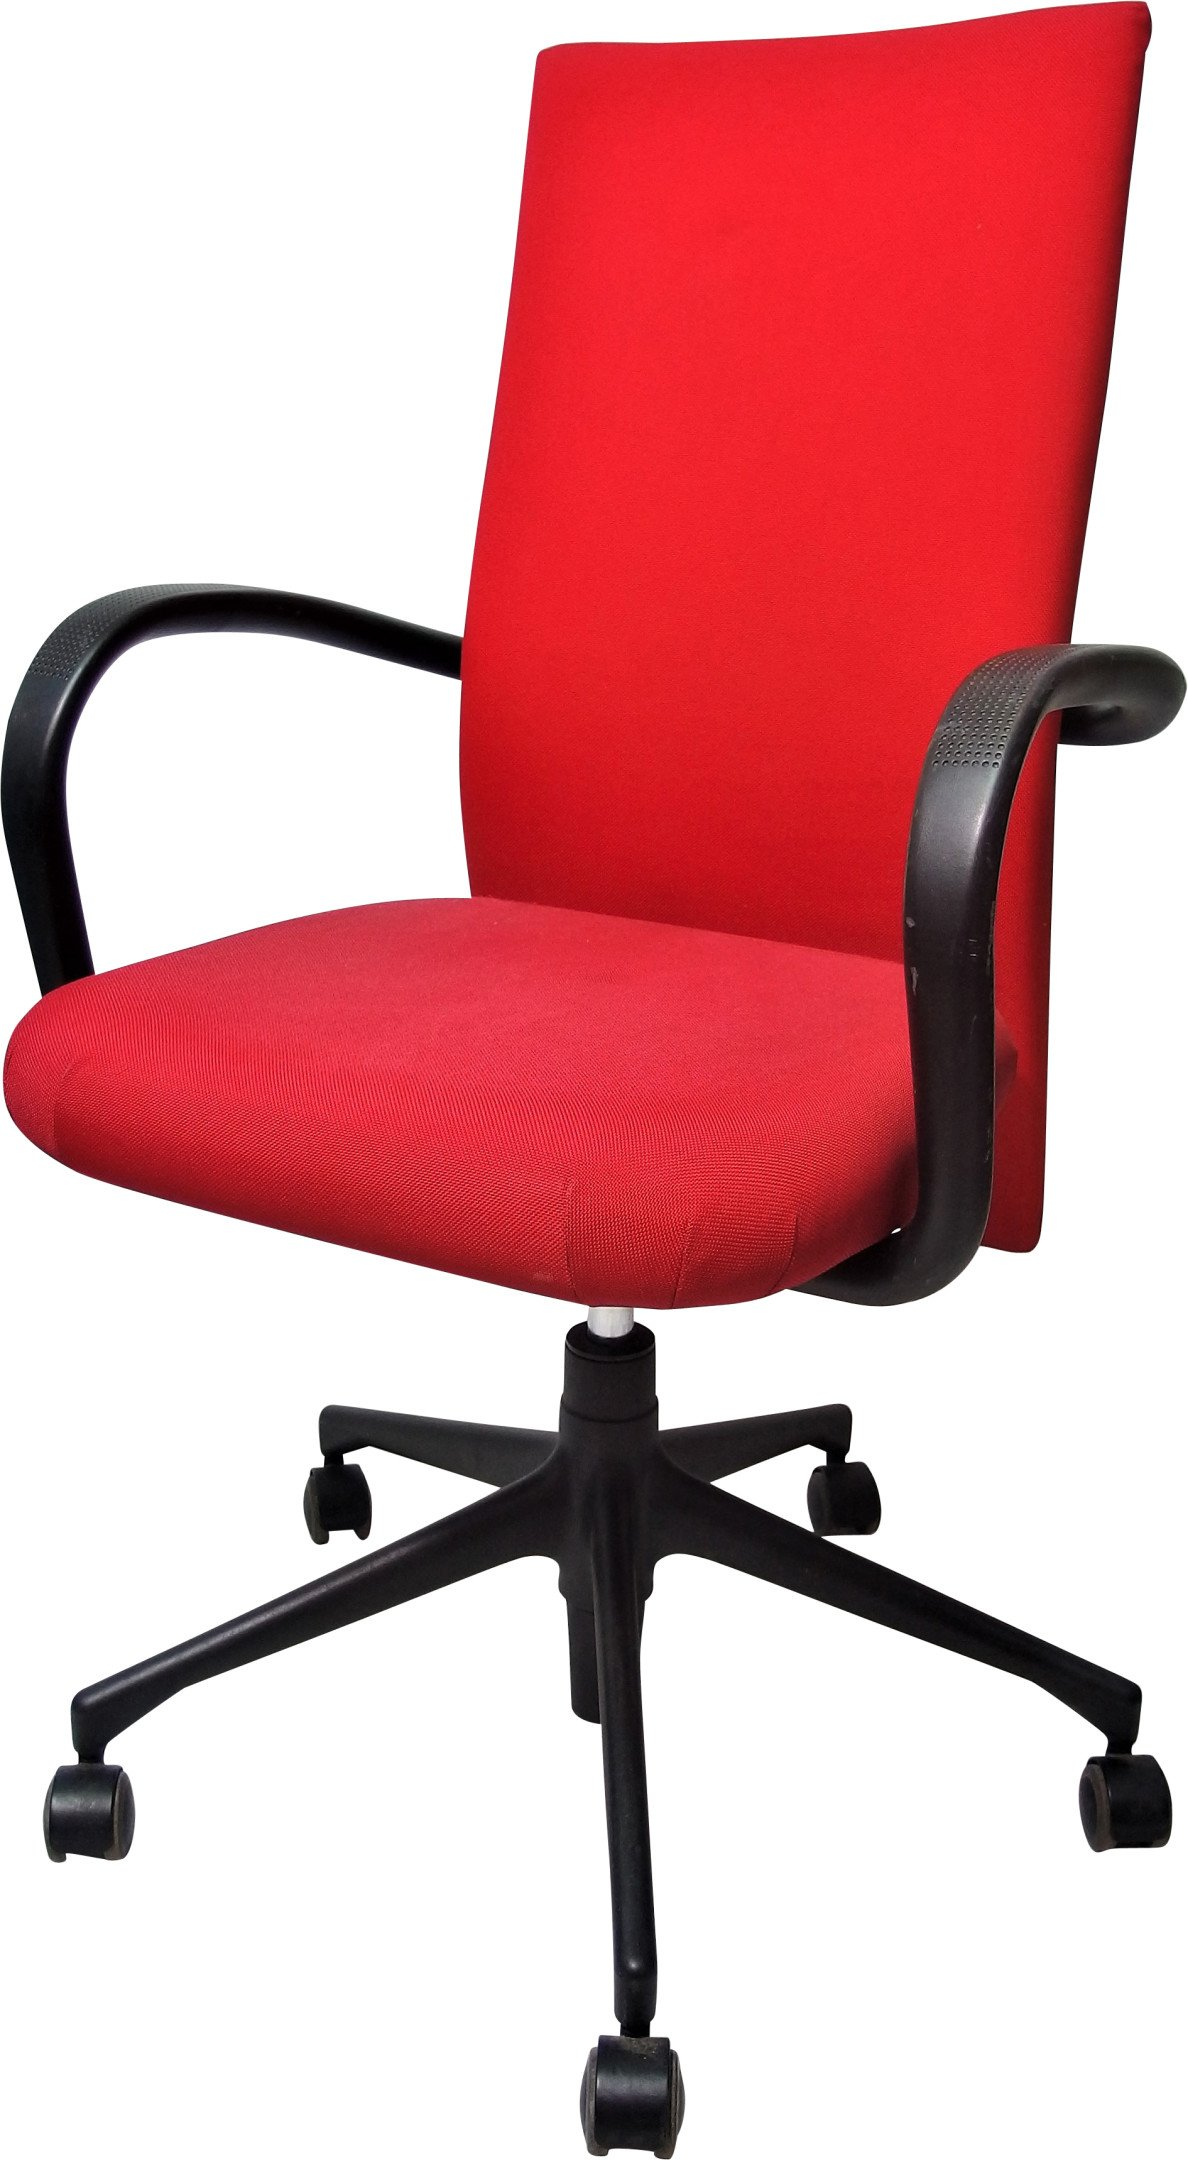 Office Chair, Vitra, 1980s